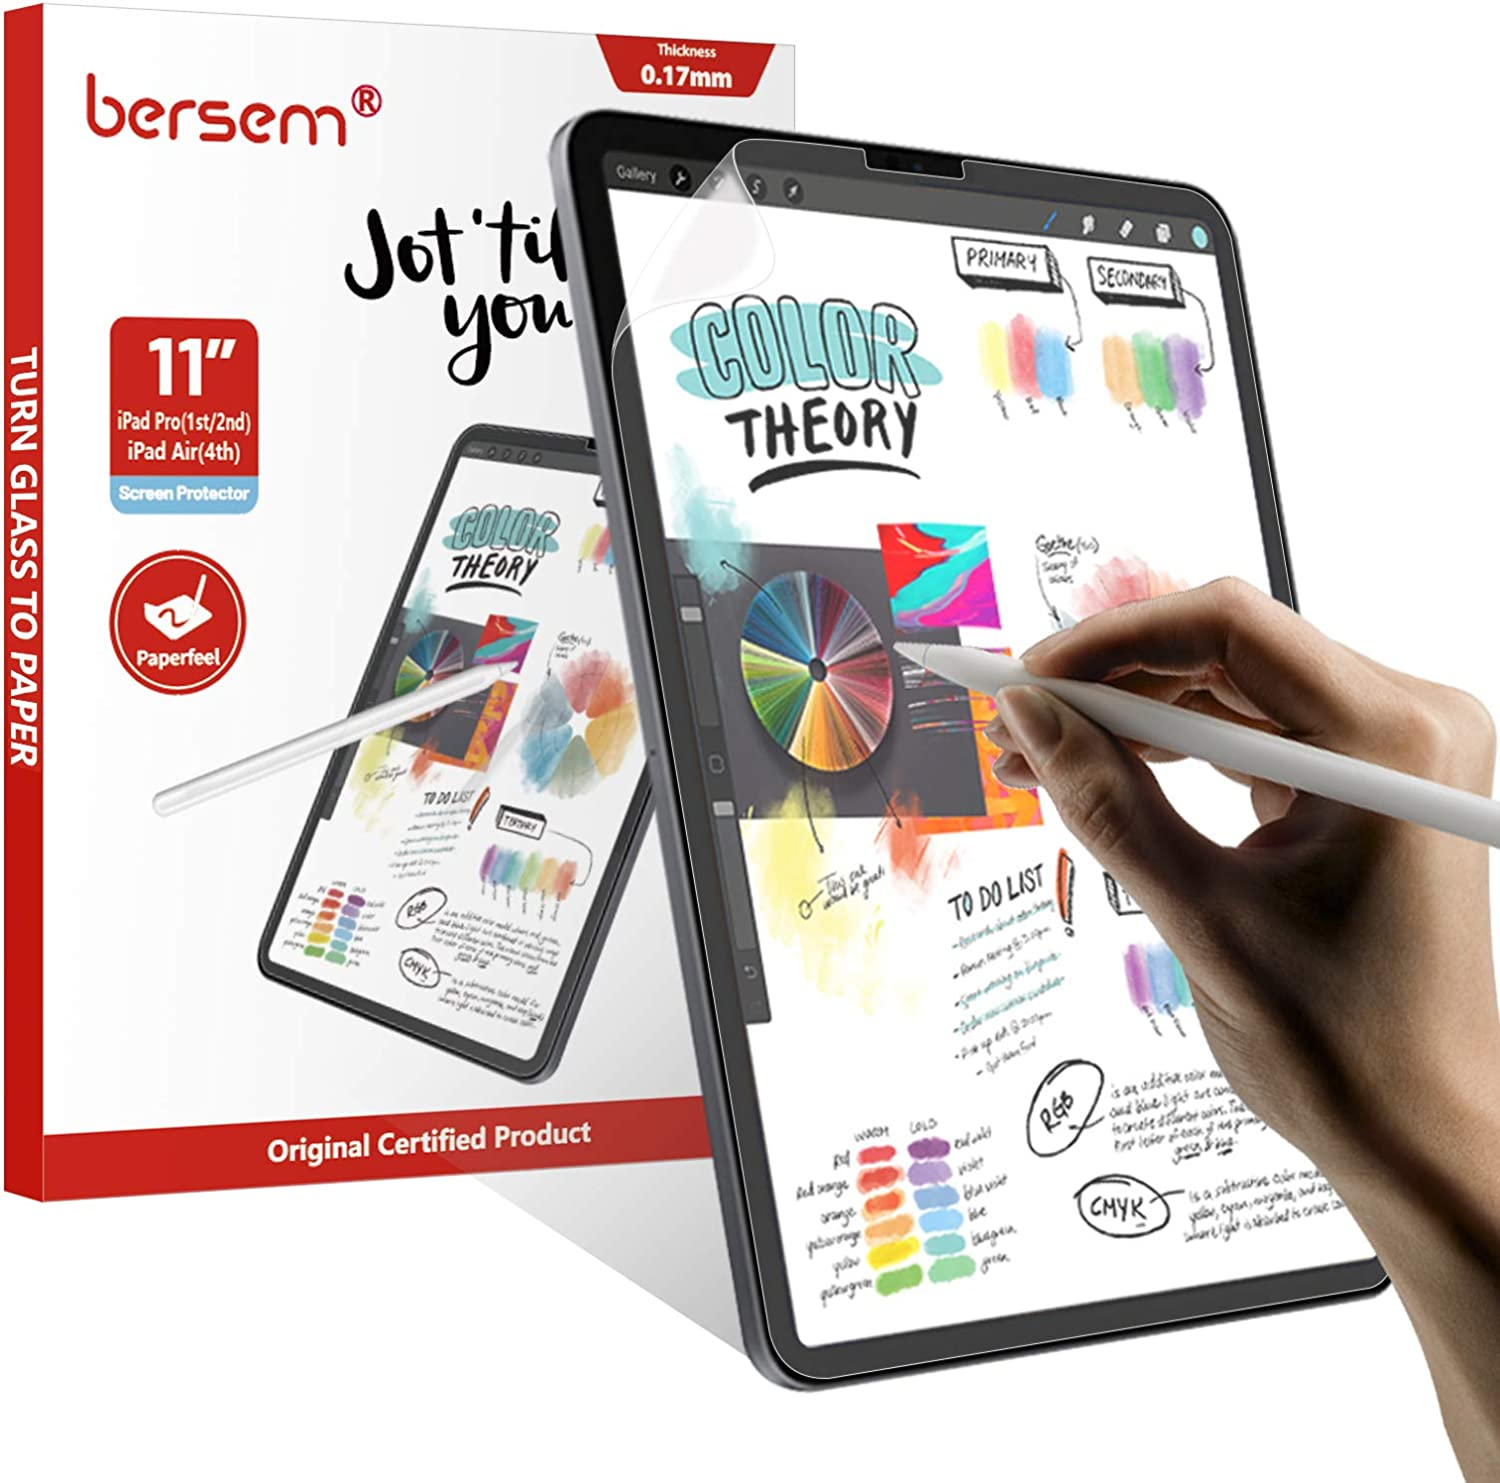 BERSEM [3 Pack] Paperfeel Screen Protector Compatible with iPad Air 4 (10.9